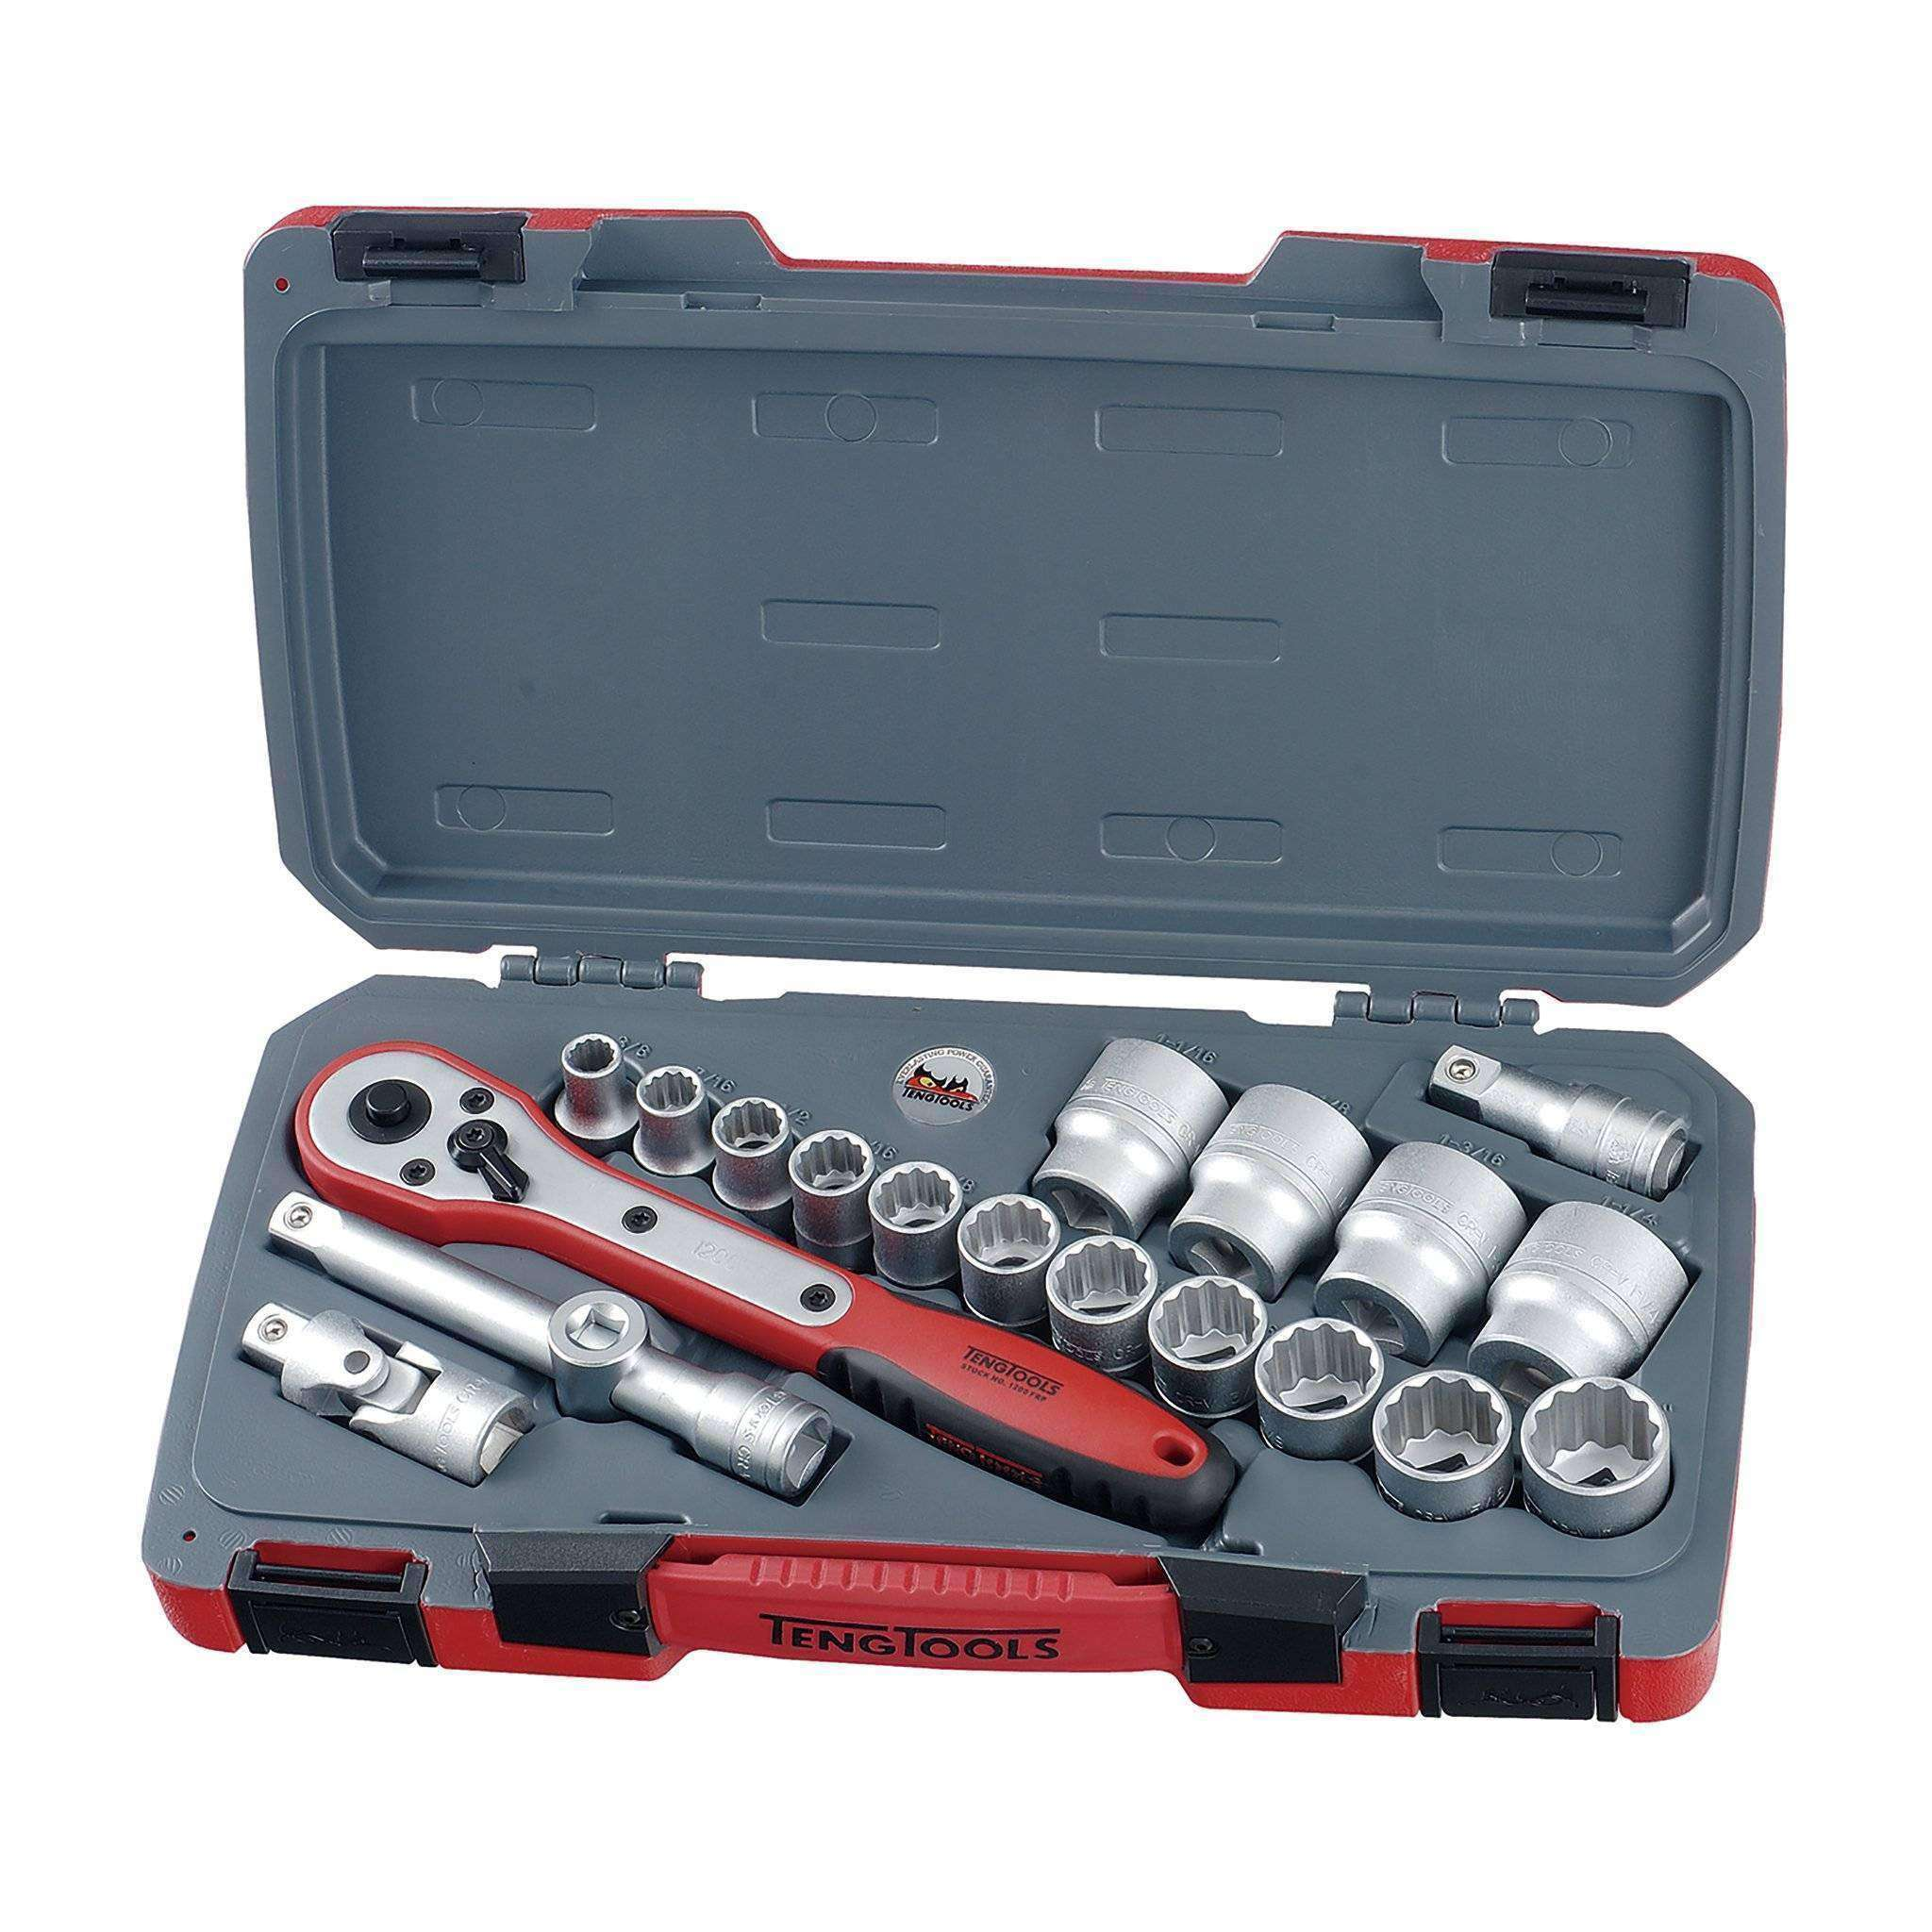 Teng Tools - 20 Piece 1/2 inch Drive Imperial / SAE Socket Set - TEN-O-T1220AF - Teng Tools USA